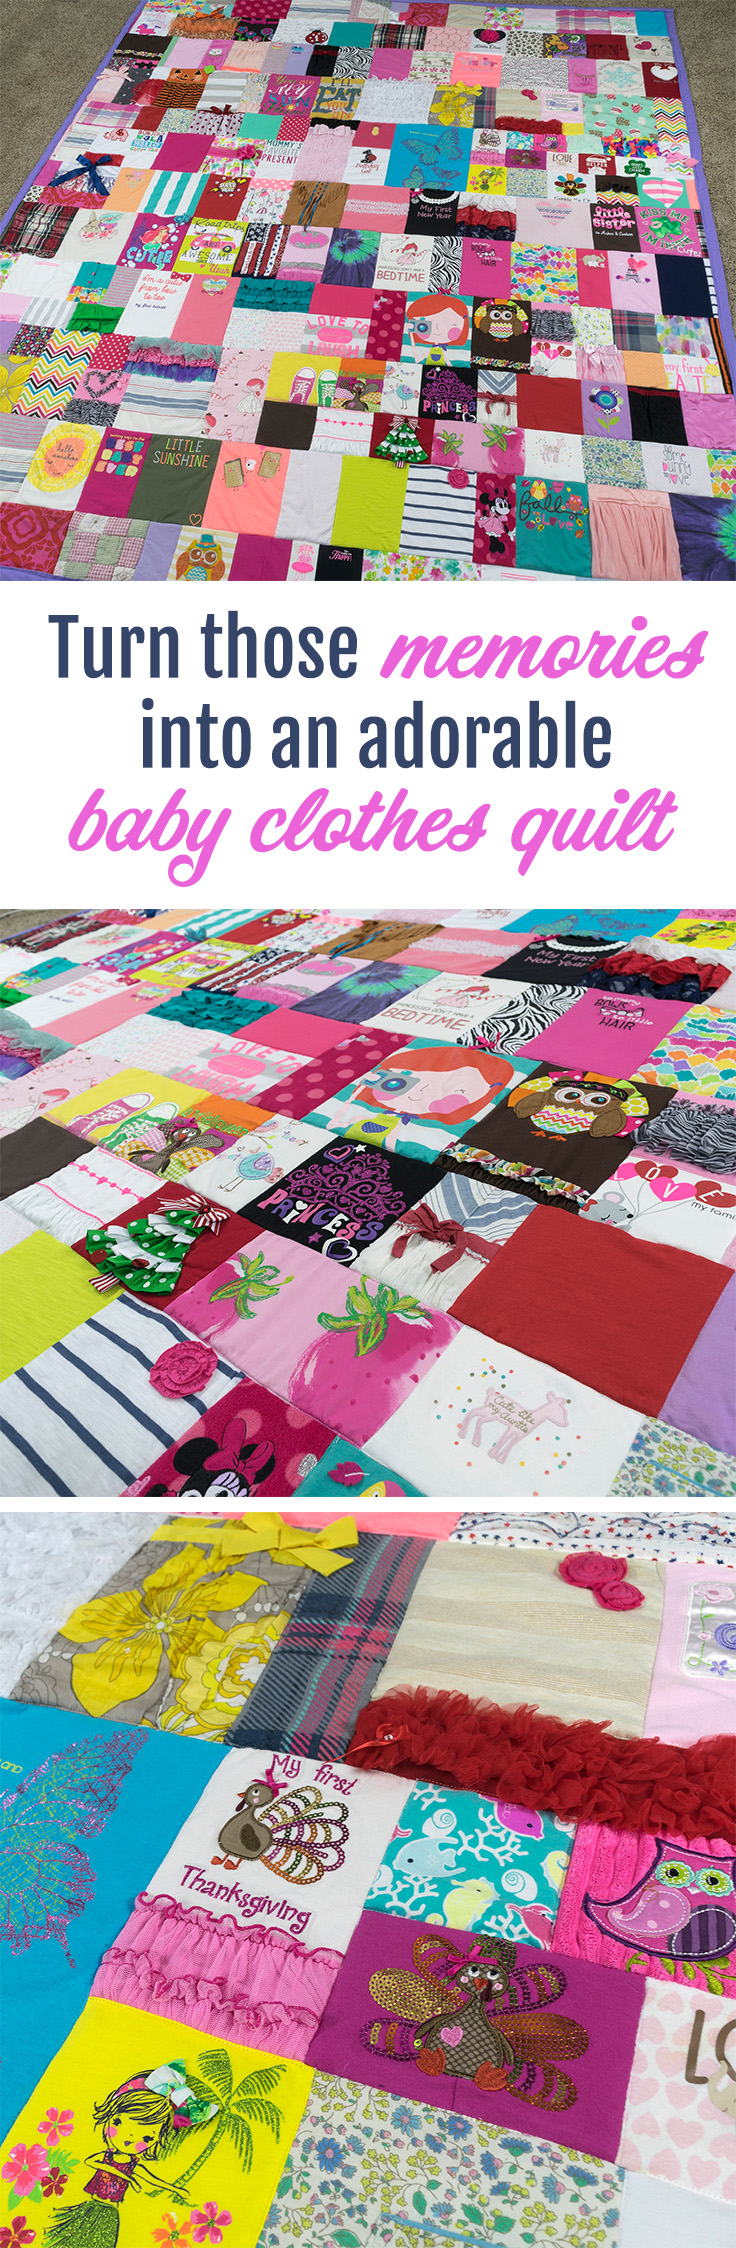 MUST DO with my kiddos clothes! This lady makes the cutest baby clothes quilts! jellybeanquilts.com